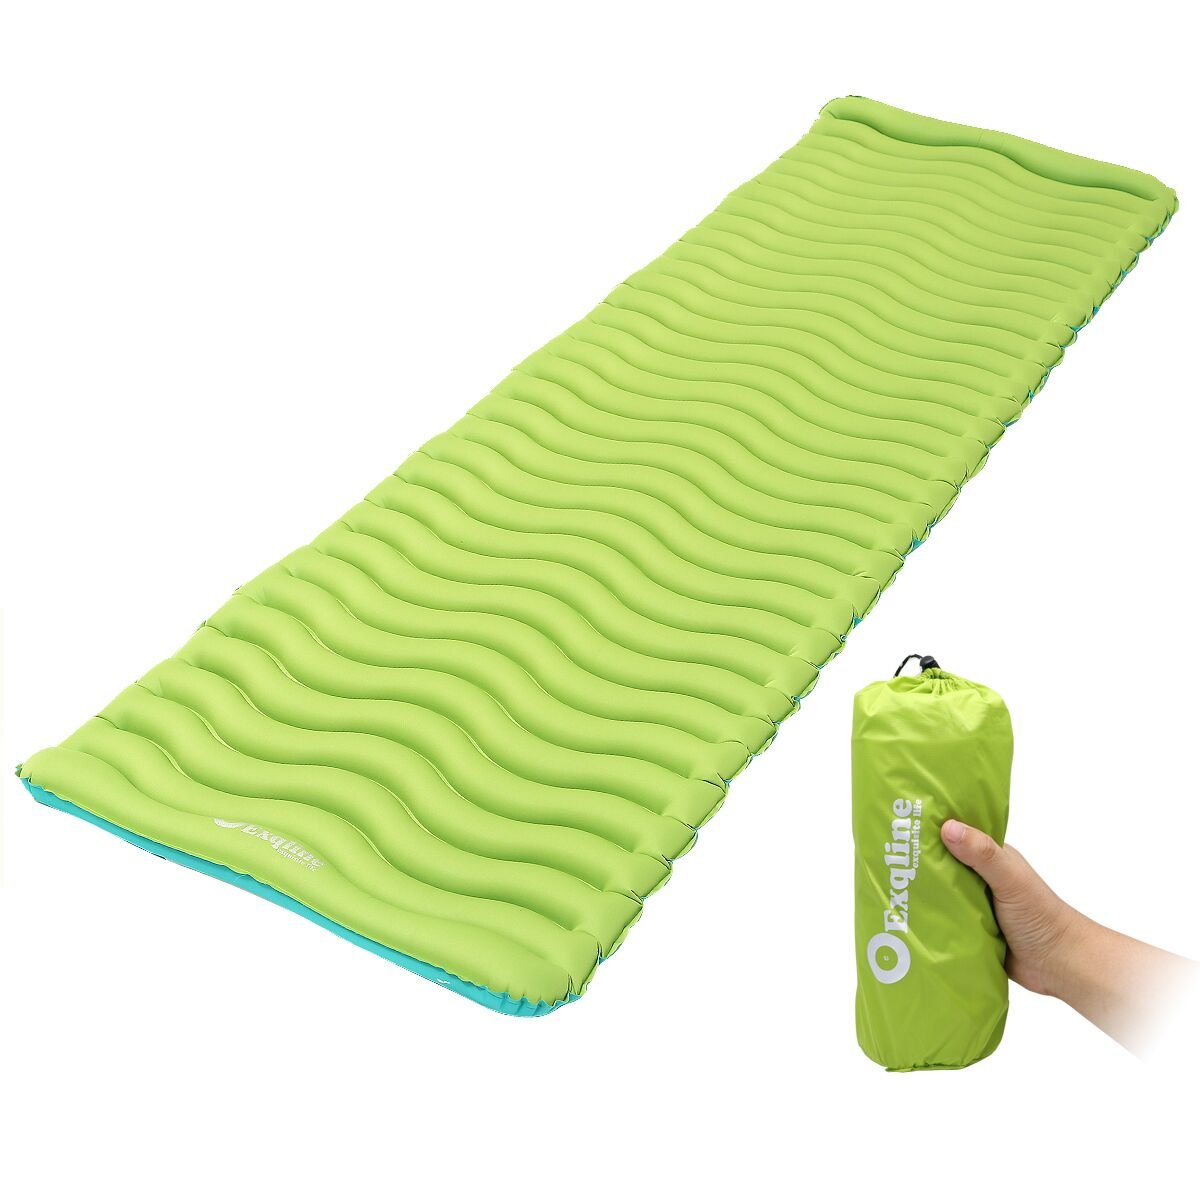 Exqline Sleeping Pad, Ultralight Inflatable Sleeping Pad Ultra-Compact Sleeping Mat for Backpacking Camping Hiking Traveling